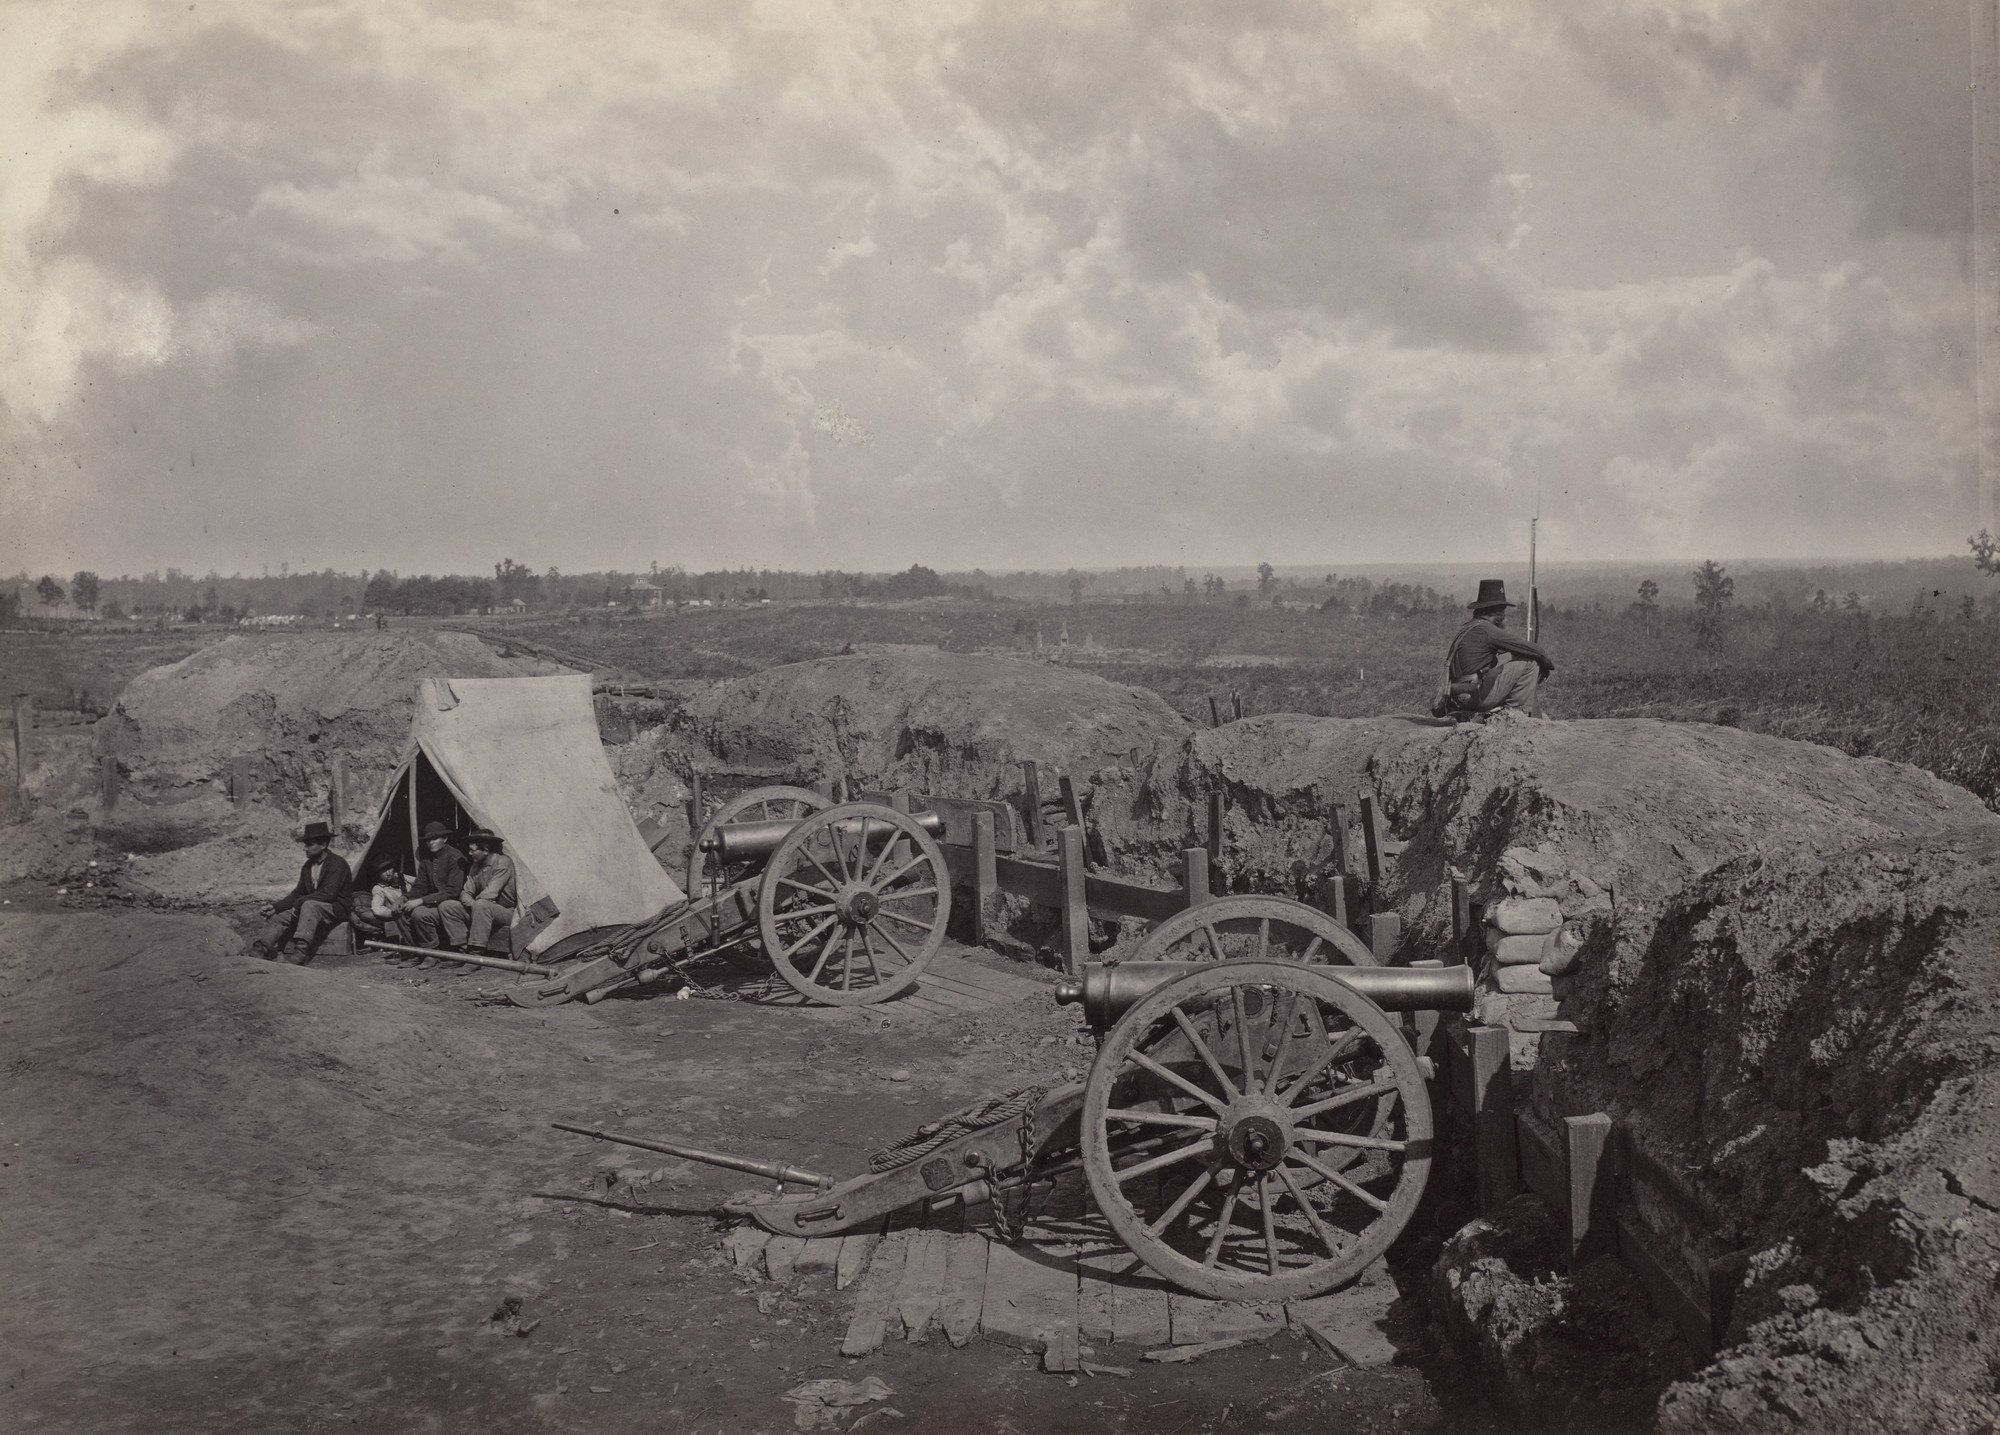 George Barnard. Rebel Works in front of Atlanta, No. 4 from the album Photographic Views of Sherman's Campaign. 1864-65